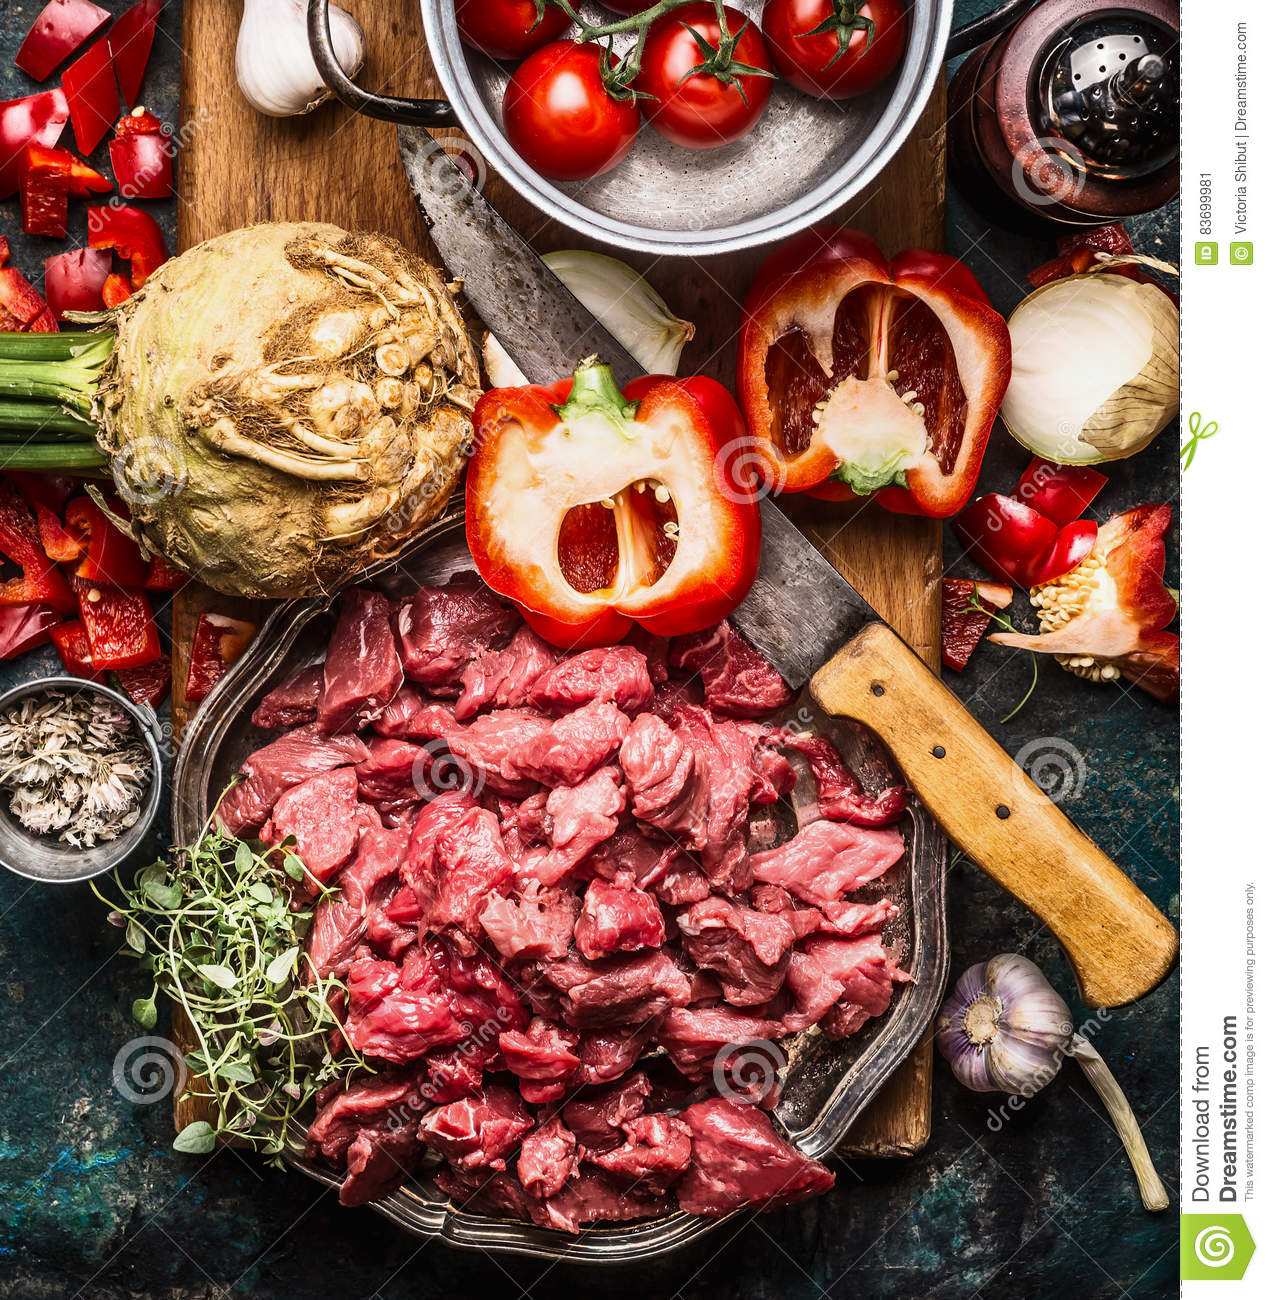 Raw gut meat with kitchen knife fresh vegetables, seasoning and spices for tasty cooking on dark rustic background